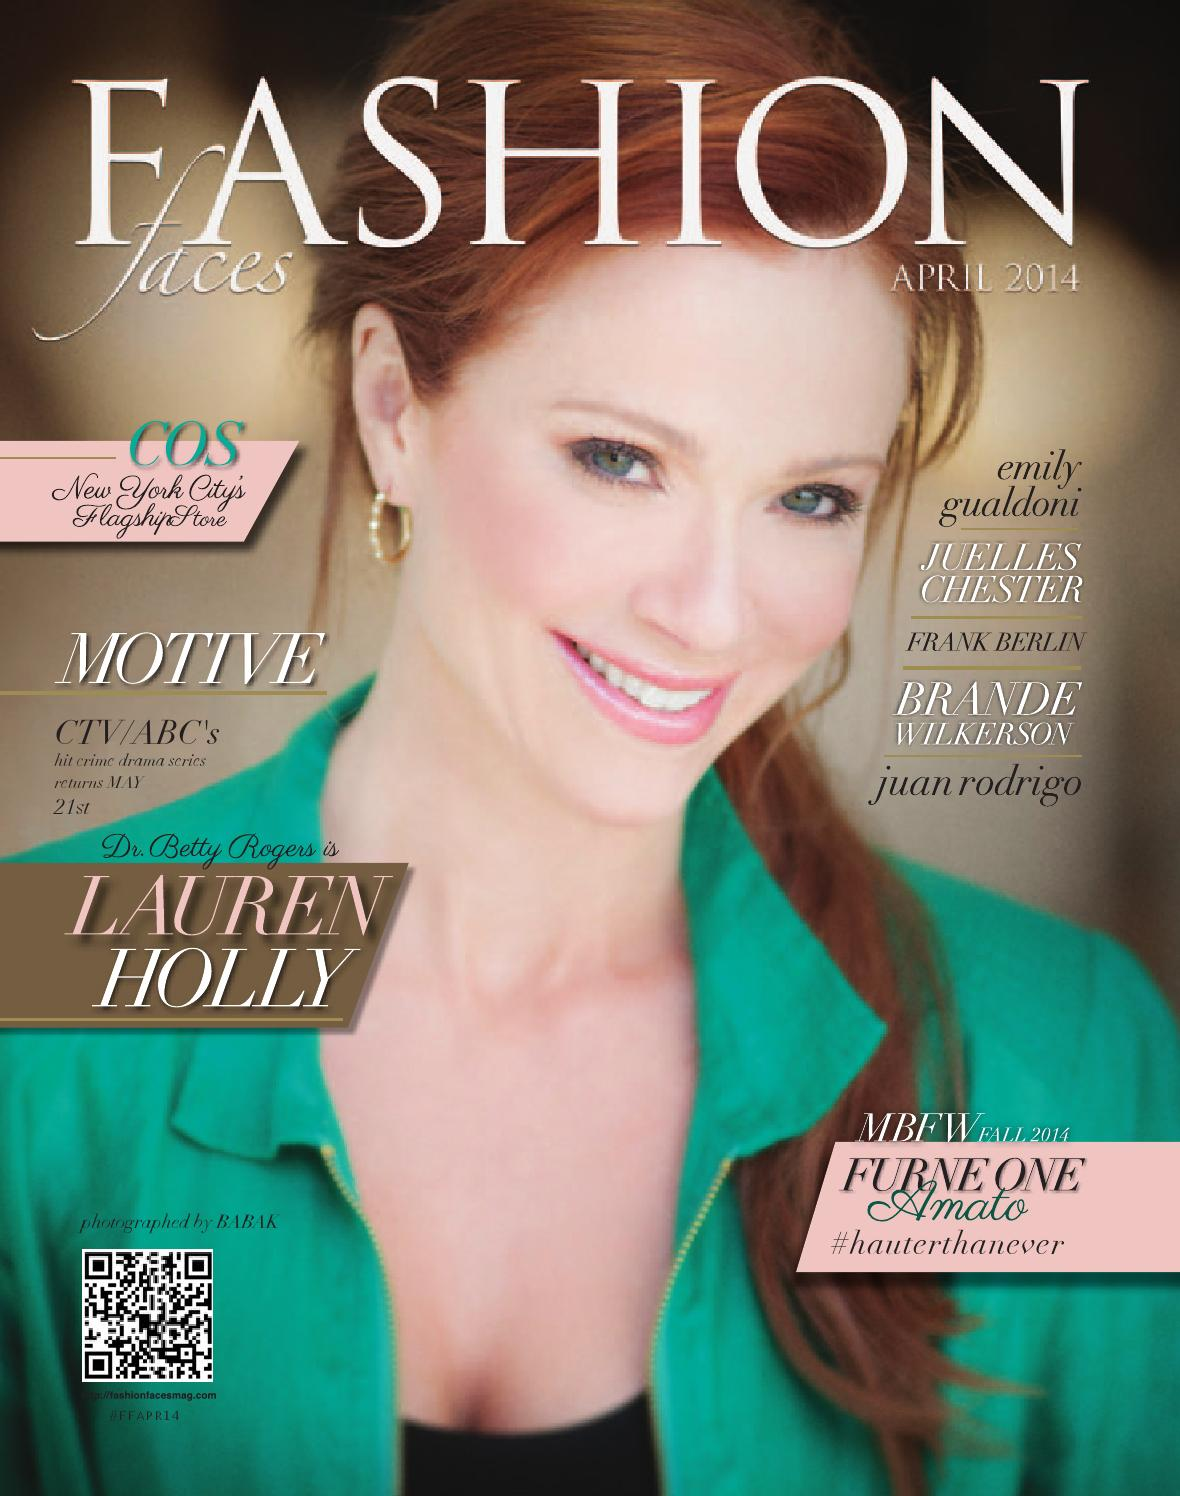 FASHION FACES April 2014 by FASHION FACES - issuu